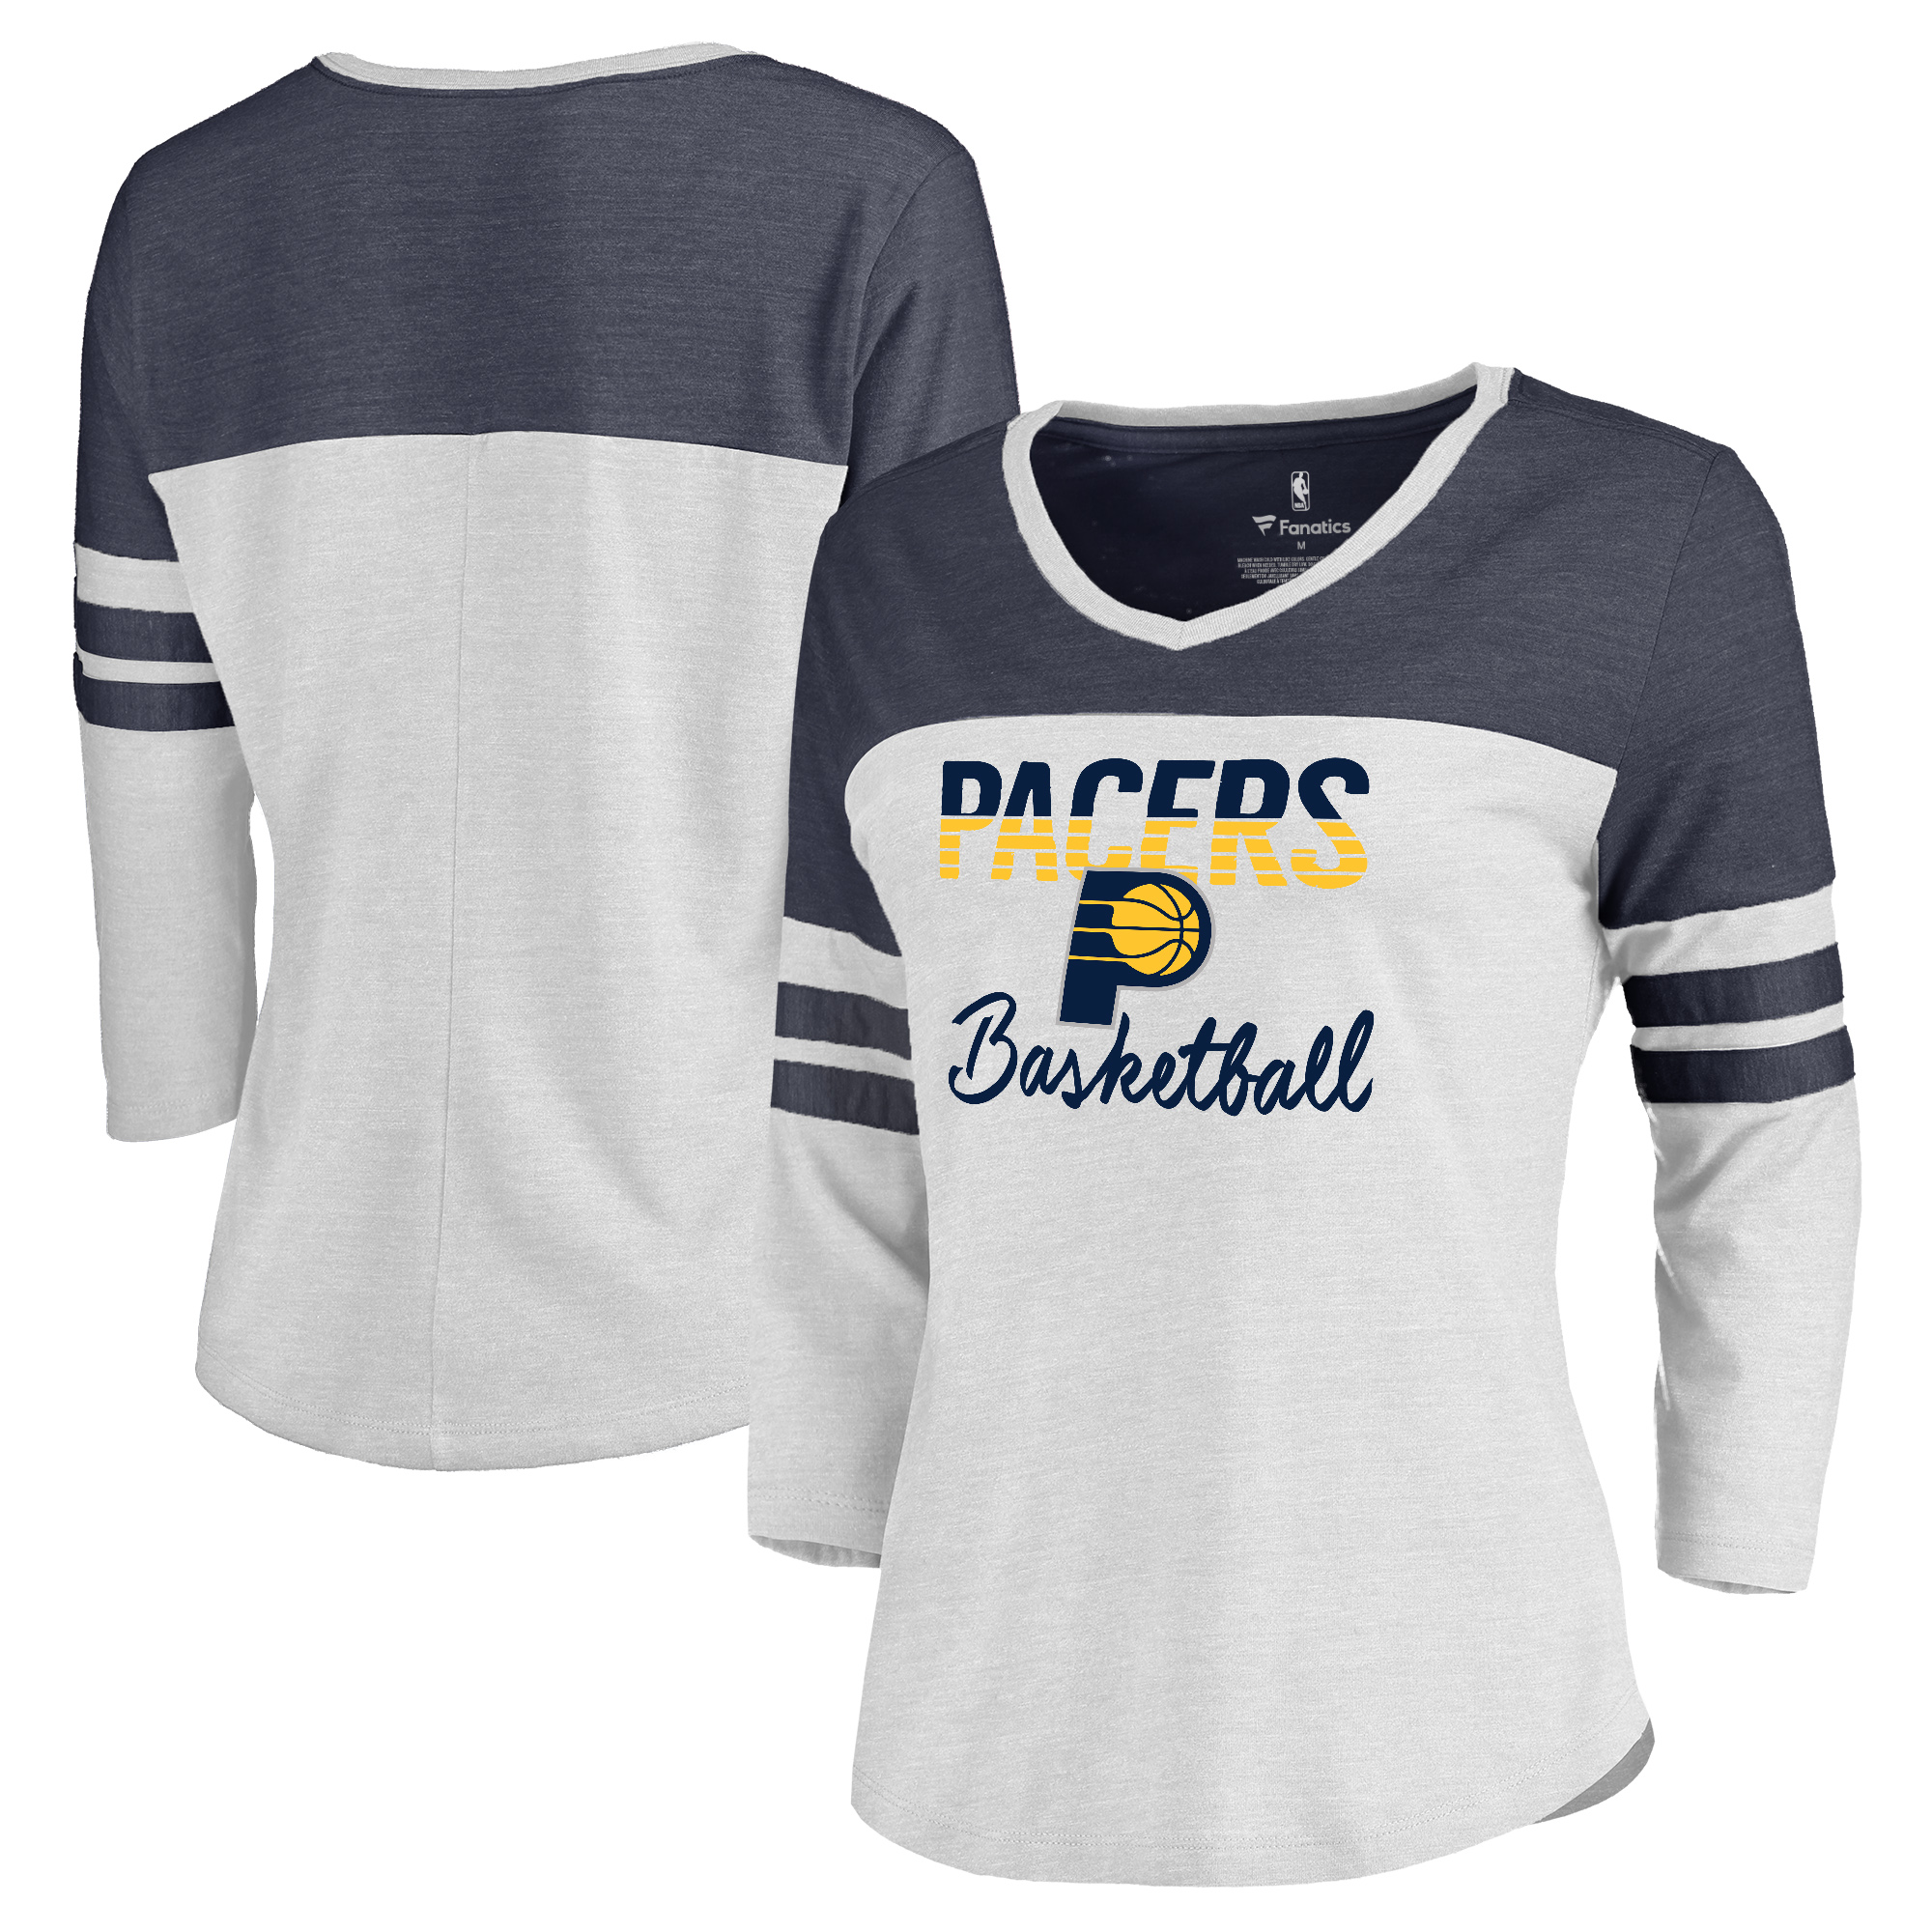 Indiana Pacers Fanatics Branded Women's Plus Size Free Line Color Block 3/4-Sleeve Tri-Blend T-Shirt - White/Navy